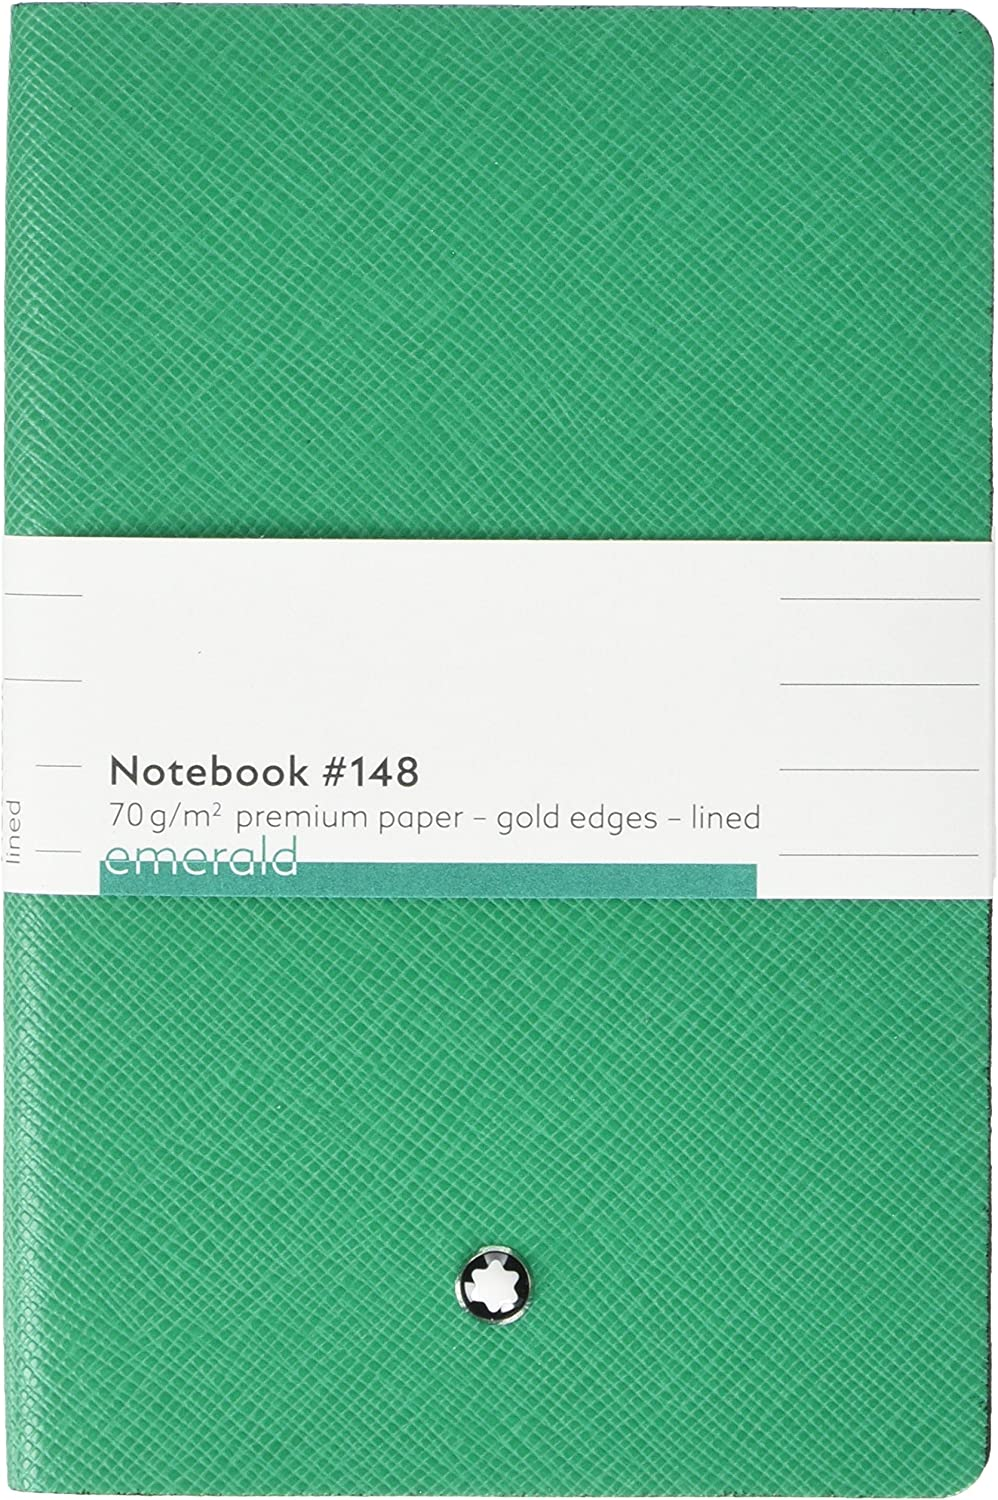 Montblanc Notebook 117866 Super special price Fine Stationery E Emerald High quality – #148 Green